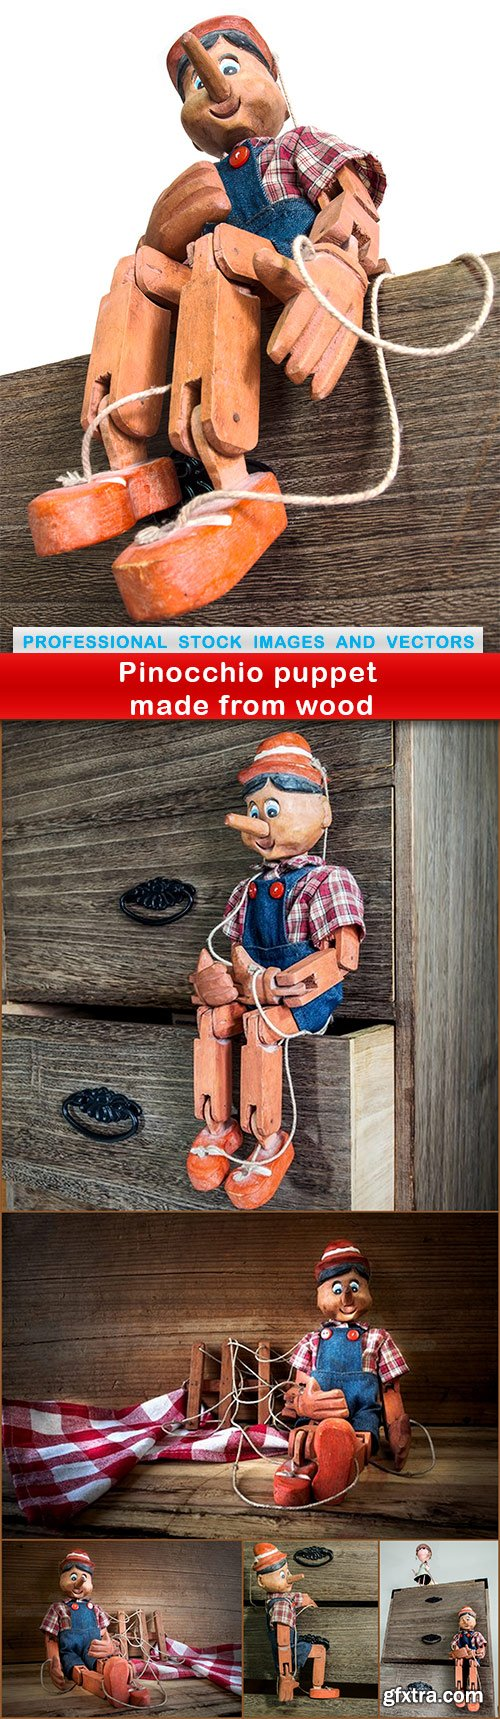 Pinocchio puppet made from wood - 6 UHQ JPEG